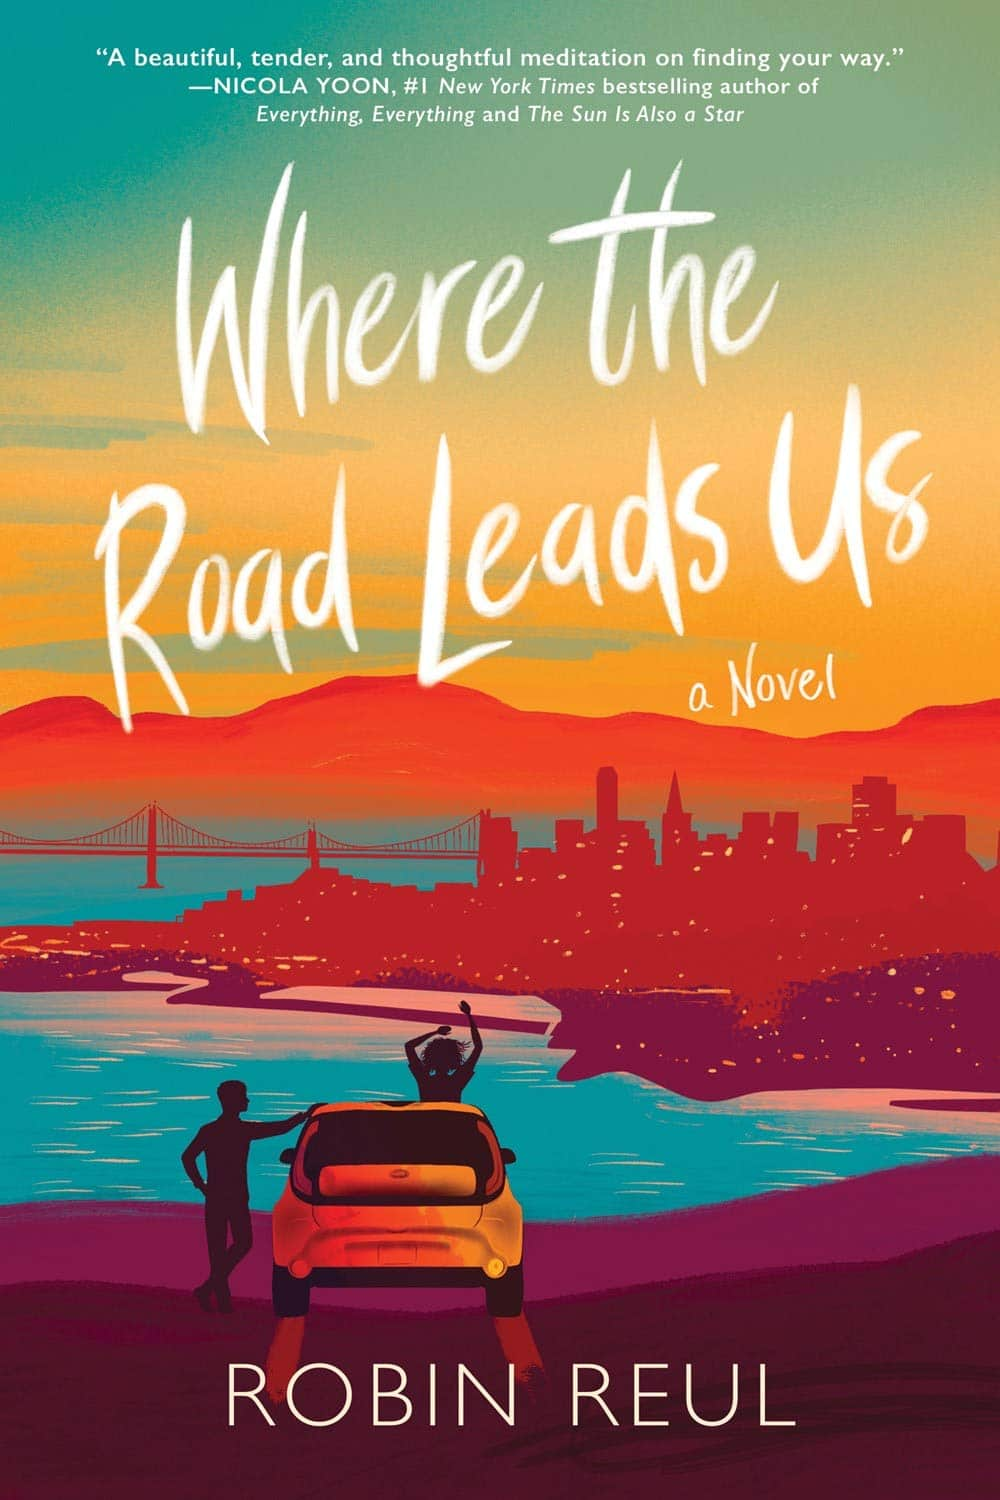 front cover of the book Where the Road Leads Us